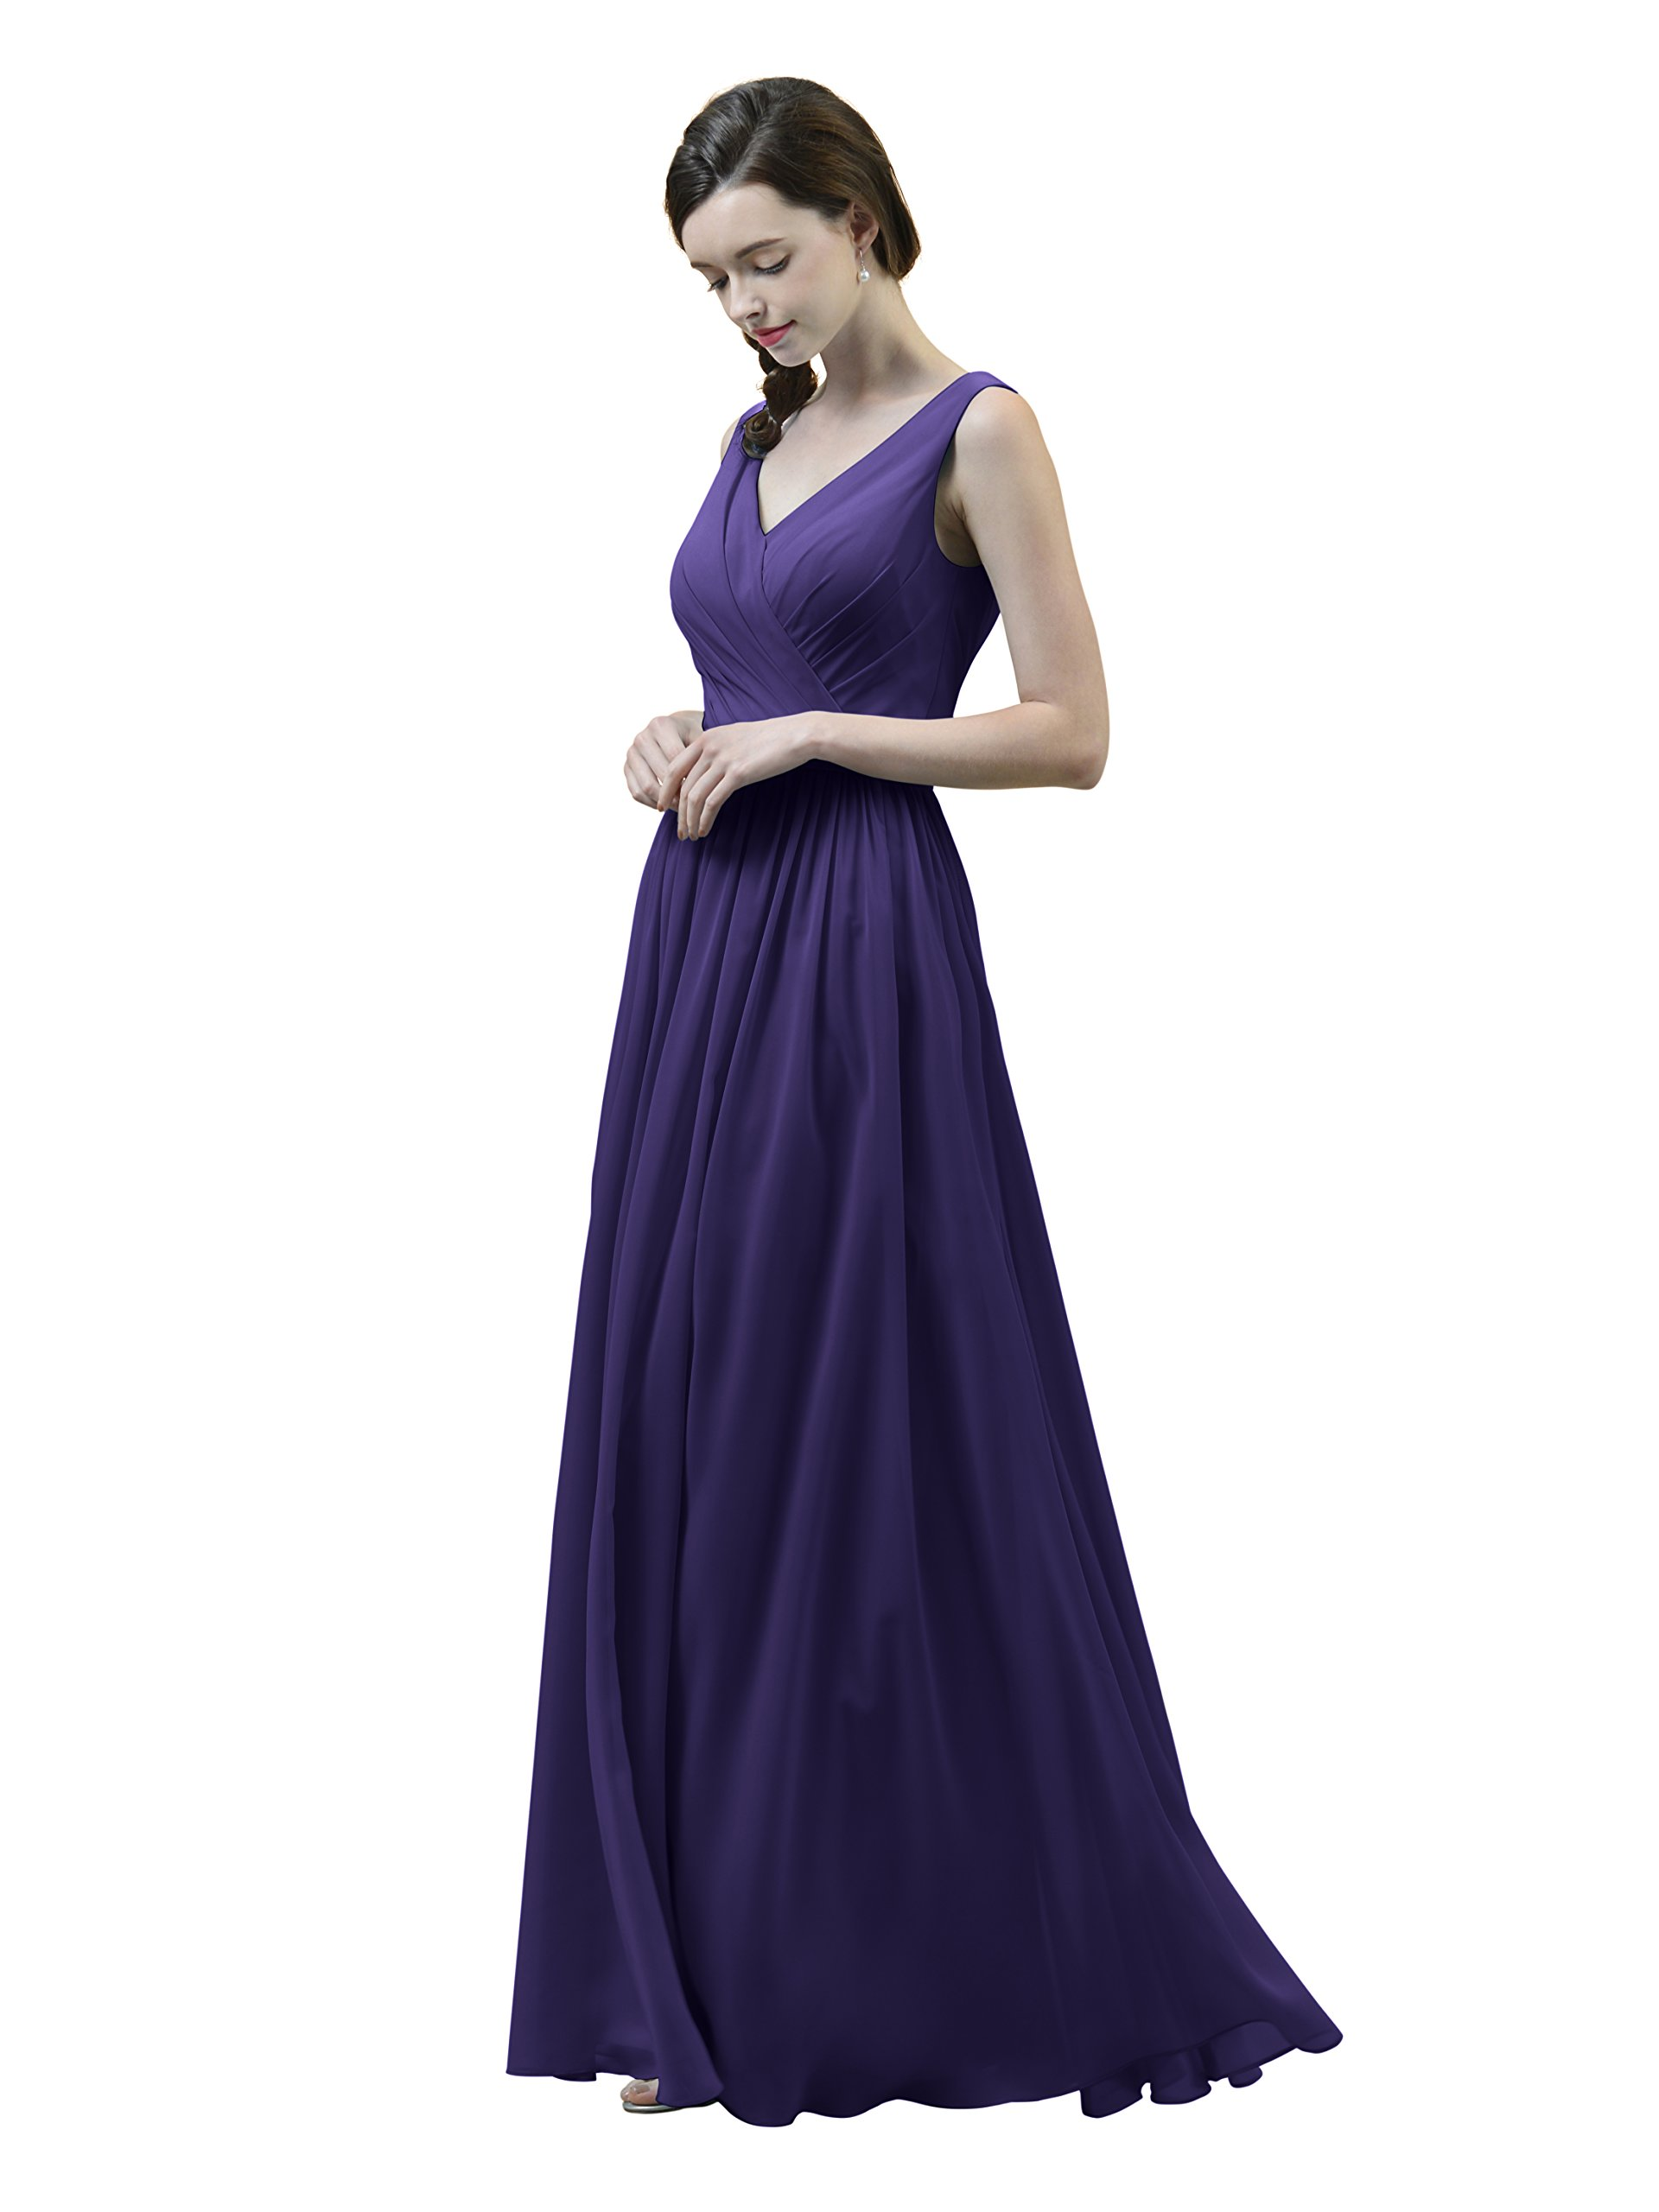 Alicepub Asymmetric Long Bridesmaid Dress Maxi Chiffon Bridal Party Evening Gown